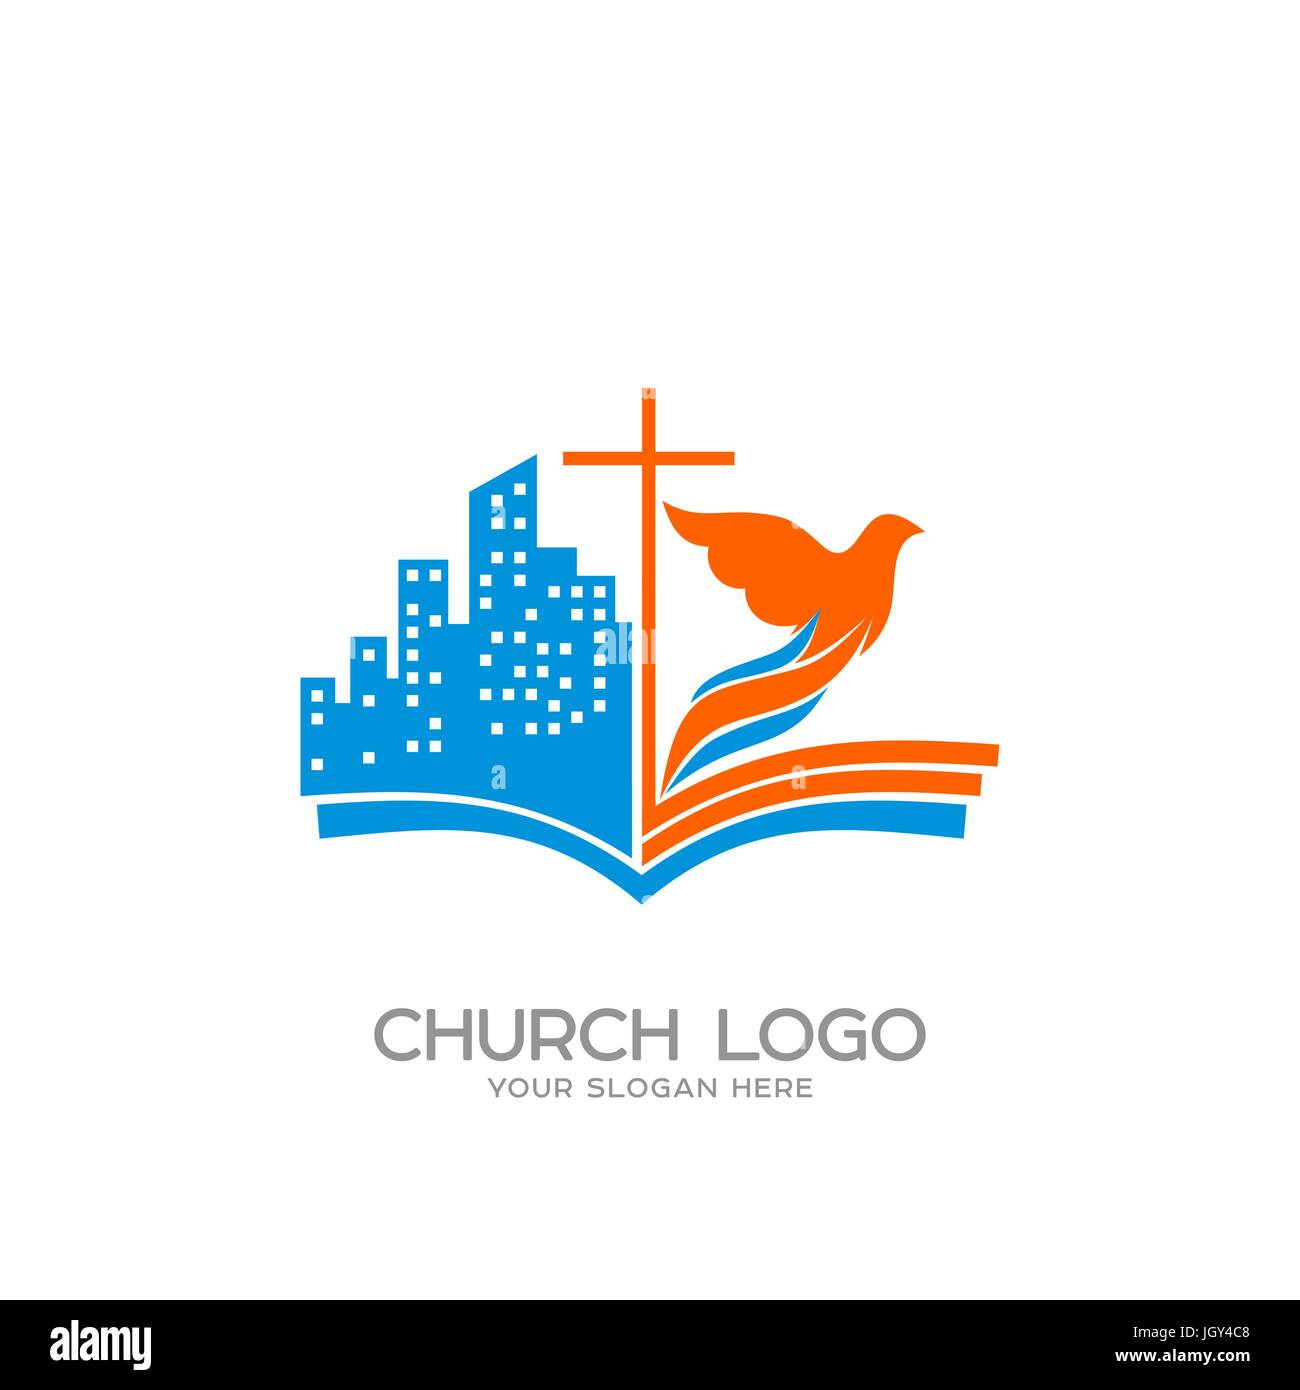 Church logo christian symbols the open bible the cross of jesus church logo christian symbols the open bible the cross of jesus the city and the dove altavistaventures Images